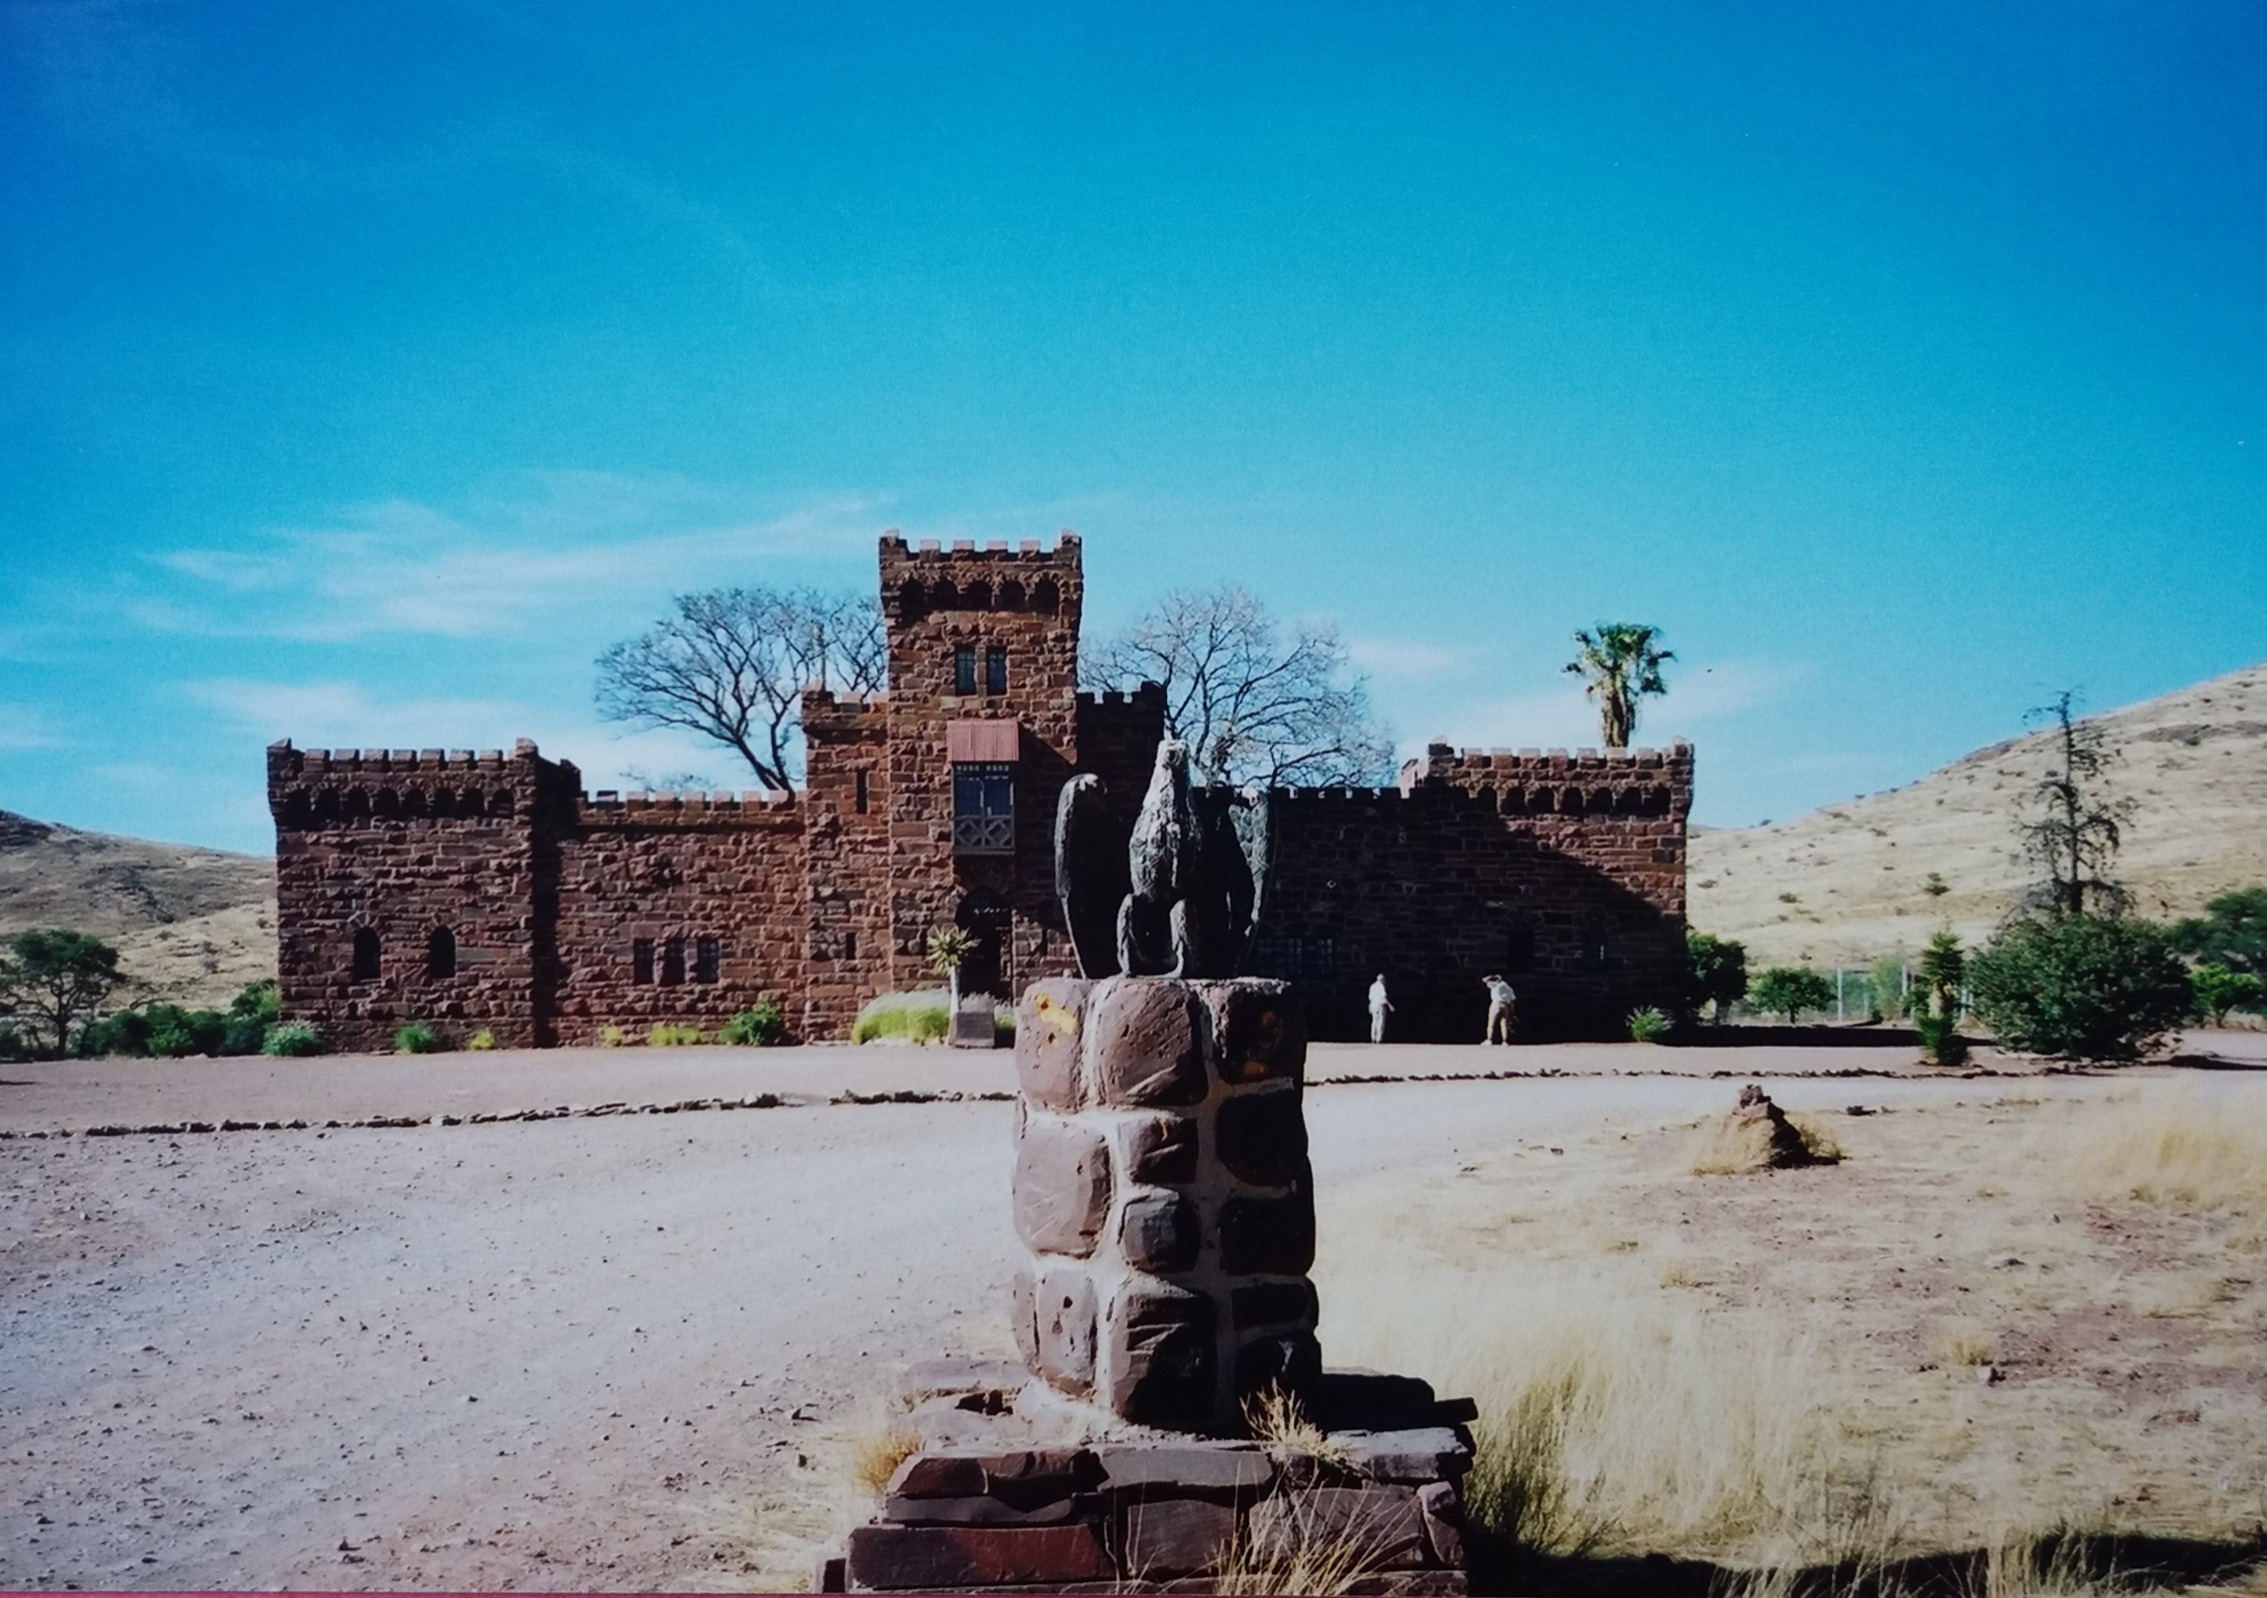 Namibia diary - Day 6 - Duwisib Castle